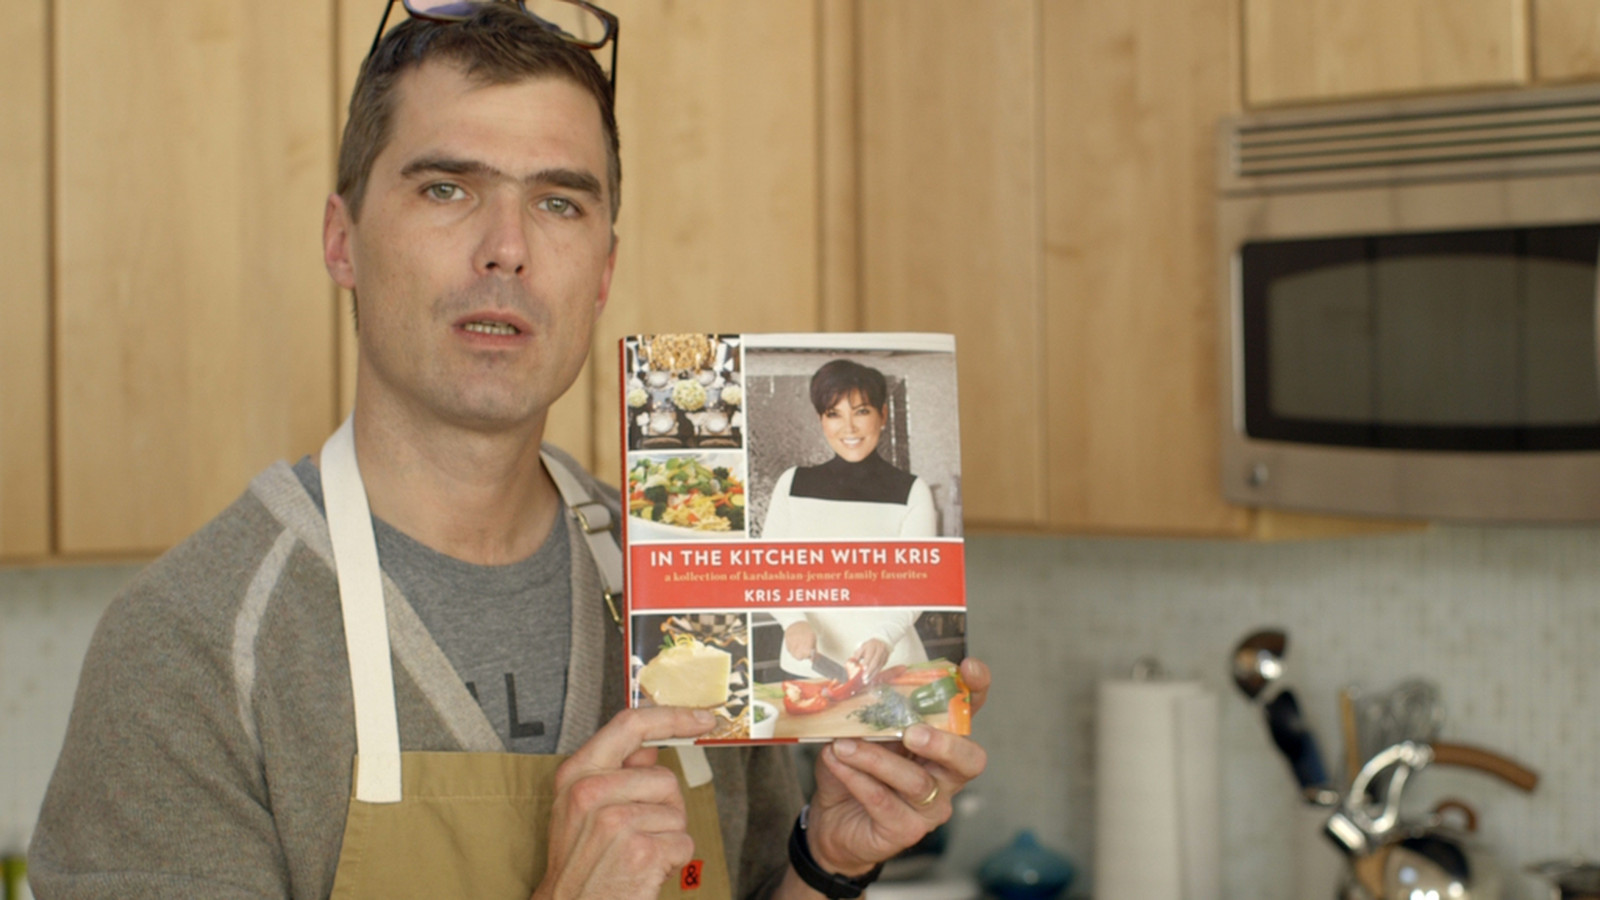 hugh acheson made nachos from kris jenner's cookbook so you don't